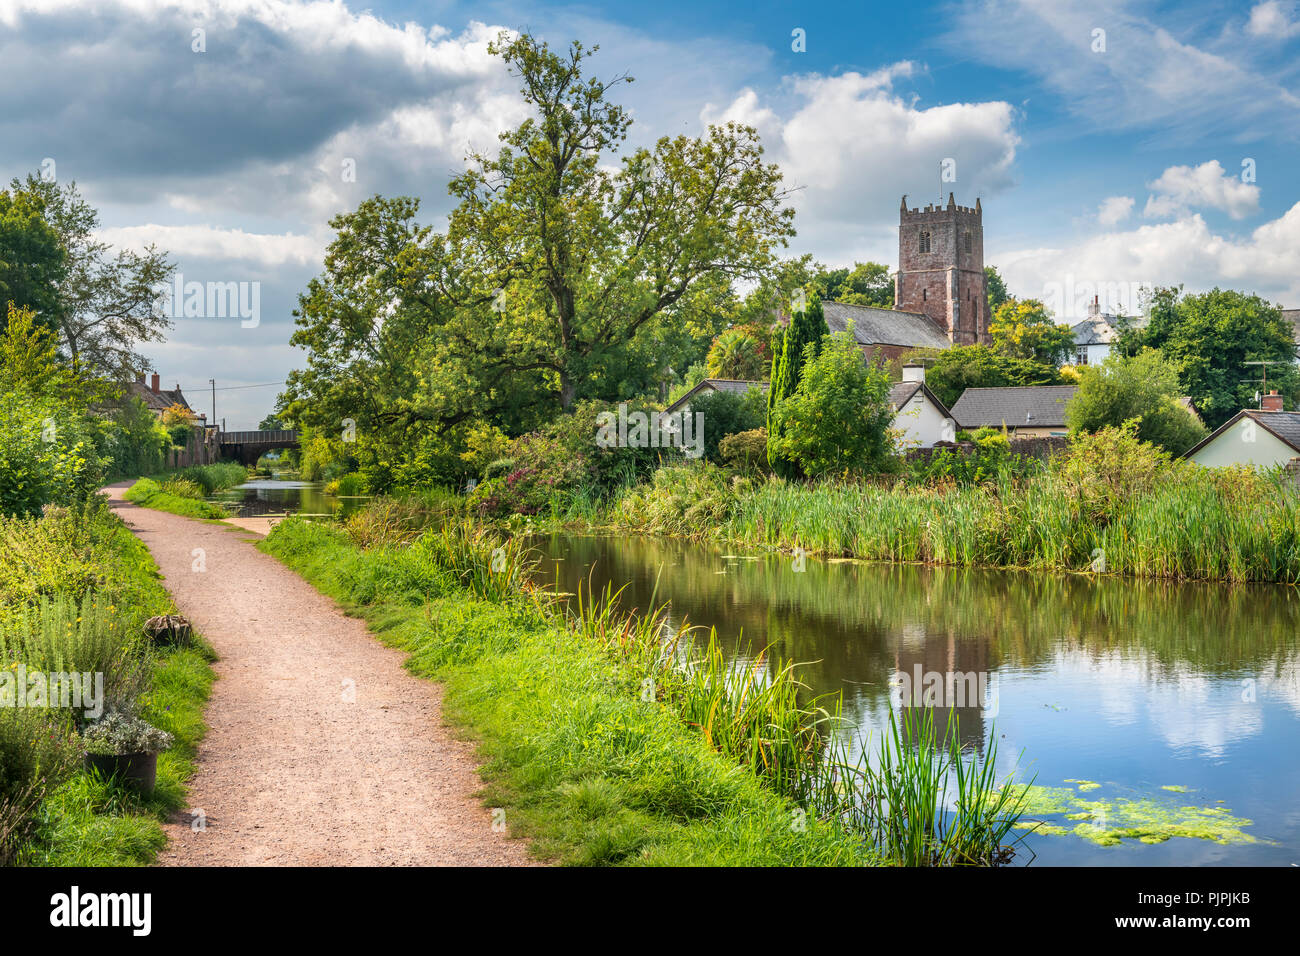 The Grand Western Canal runs through the middle of the picturesque Devon village of Sampford Peverell - Stock Image